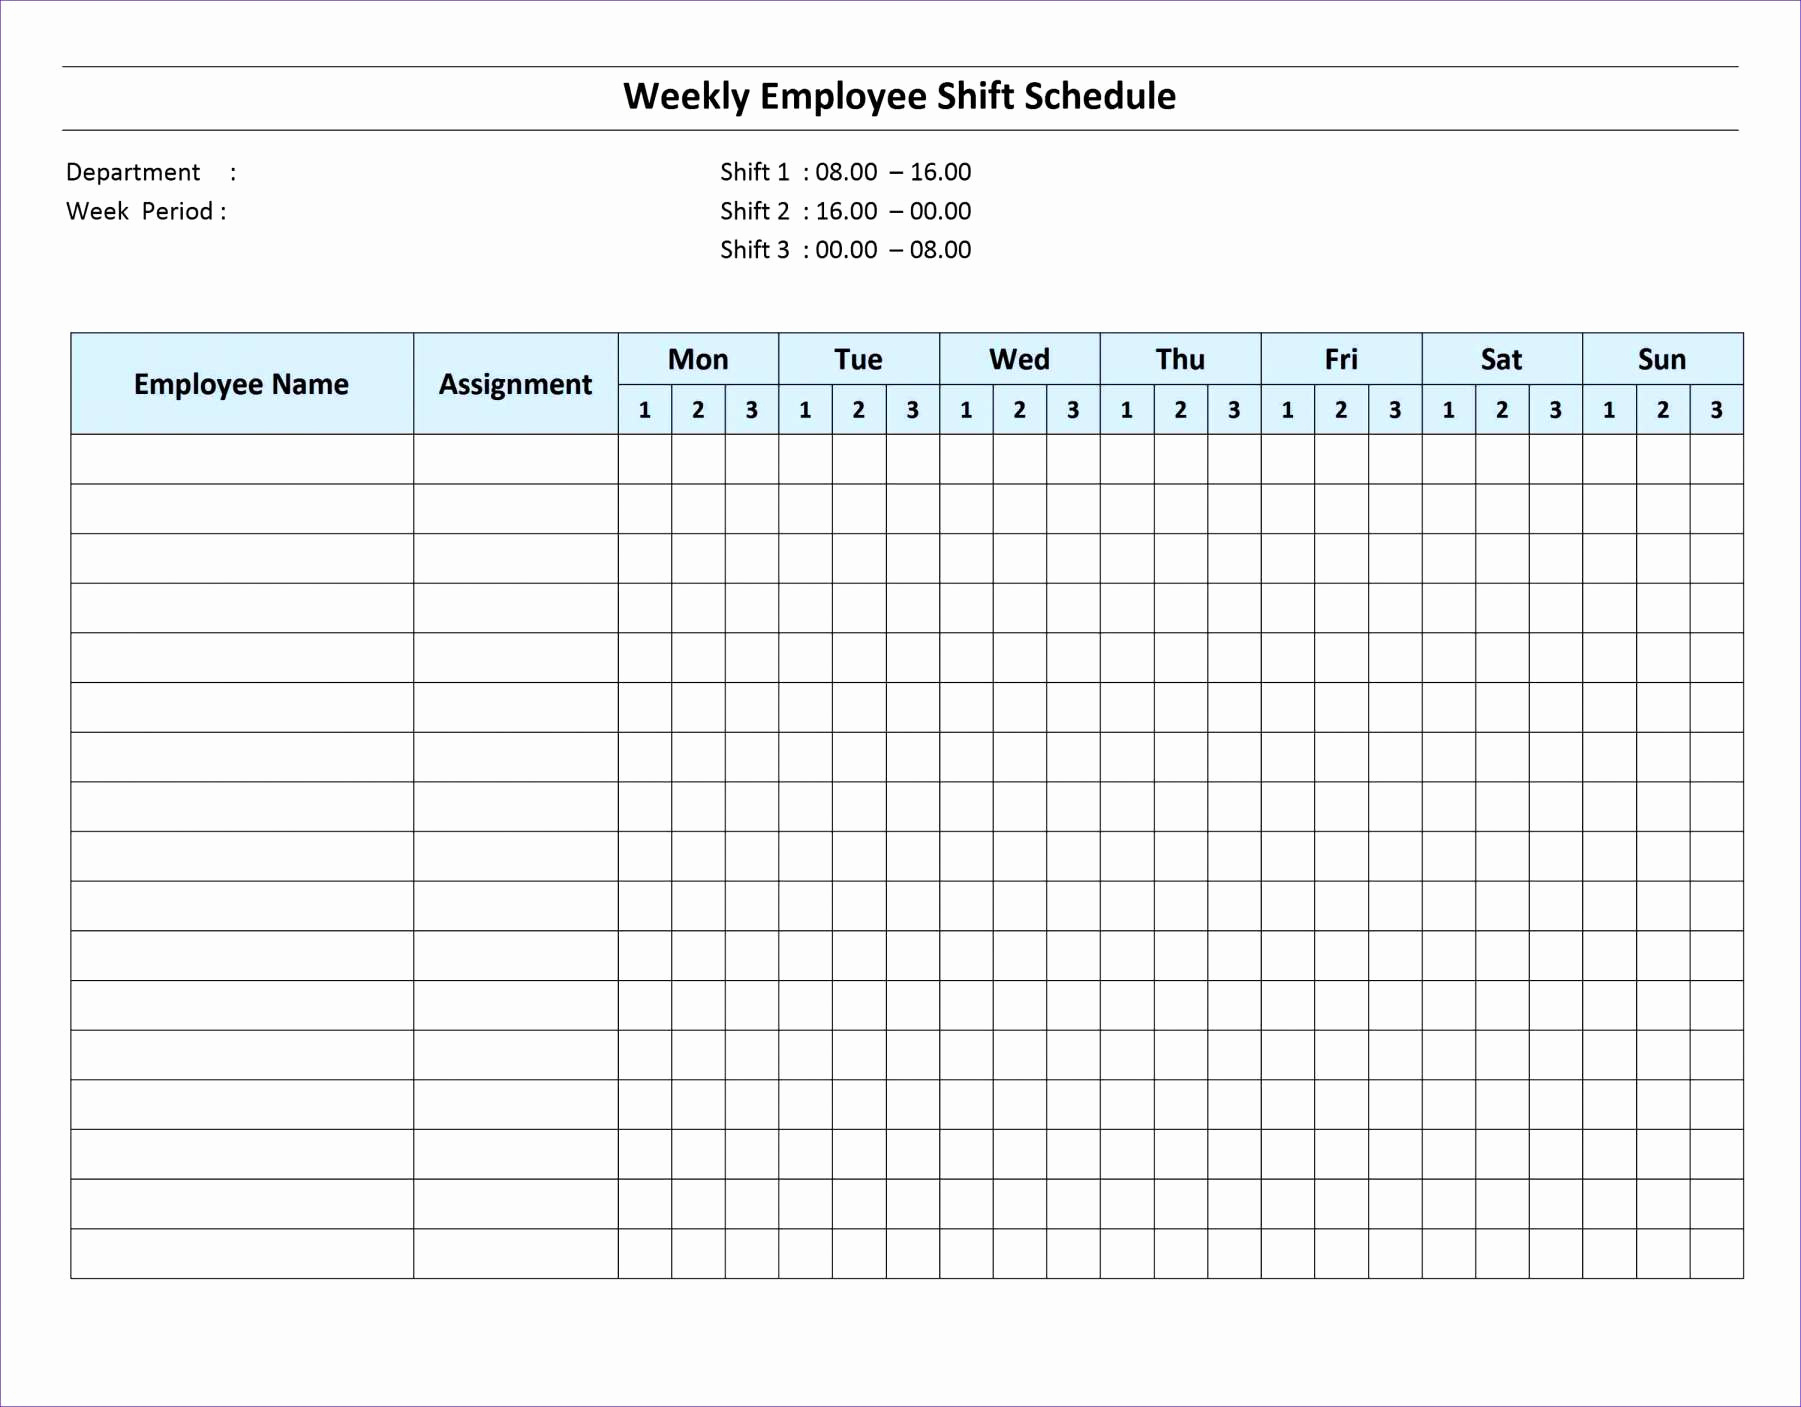 Schedule Template Door And Window Excel Spreadsheet Collections in 3 Day Shift Restaurant Template Sheets Excel